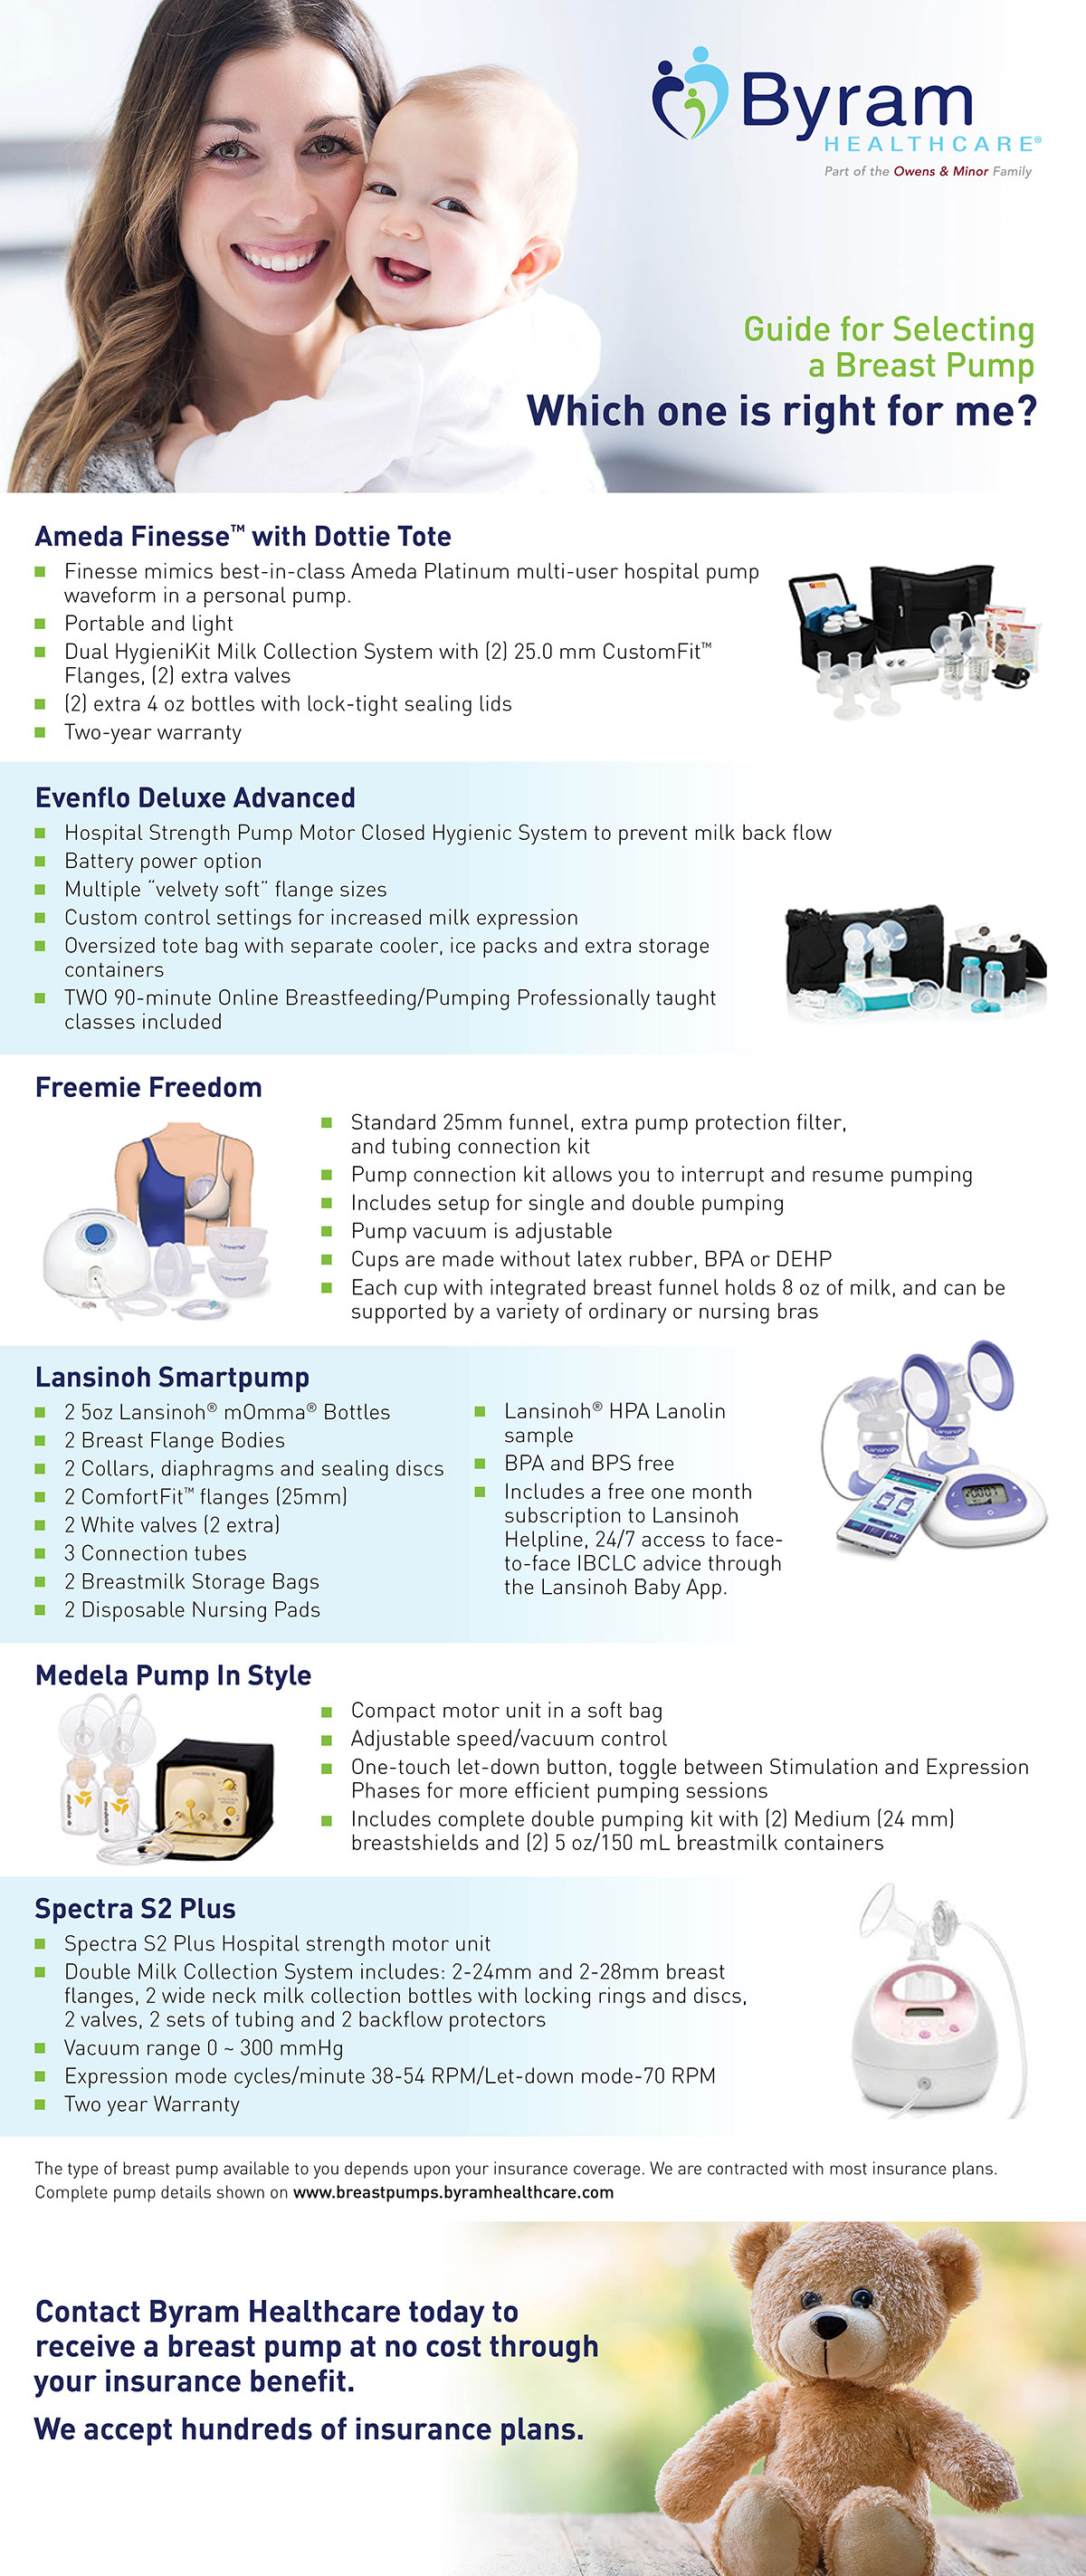 Ultimate Guide To Selecting A Breast Pump Byram Healthcare